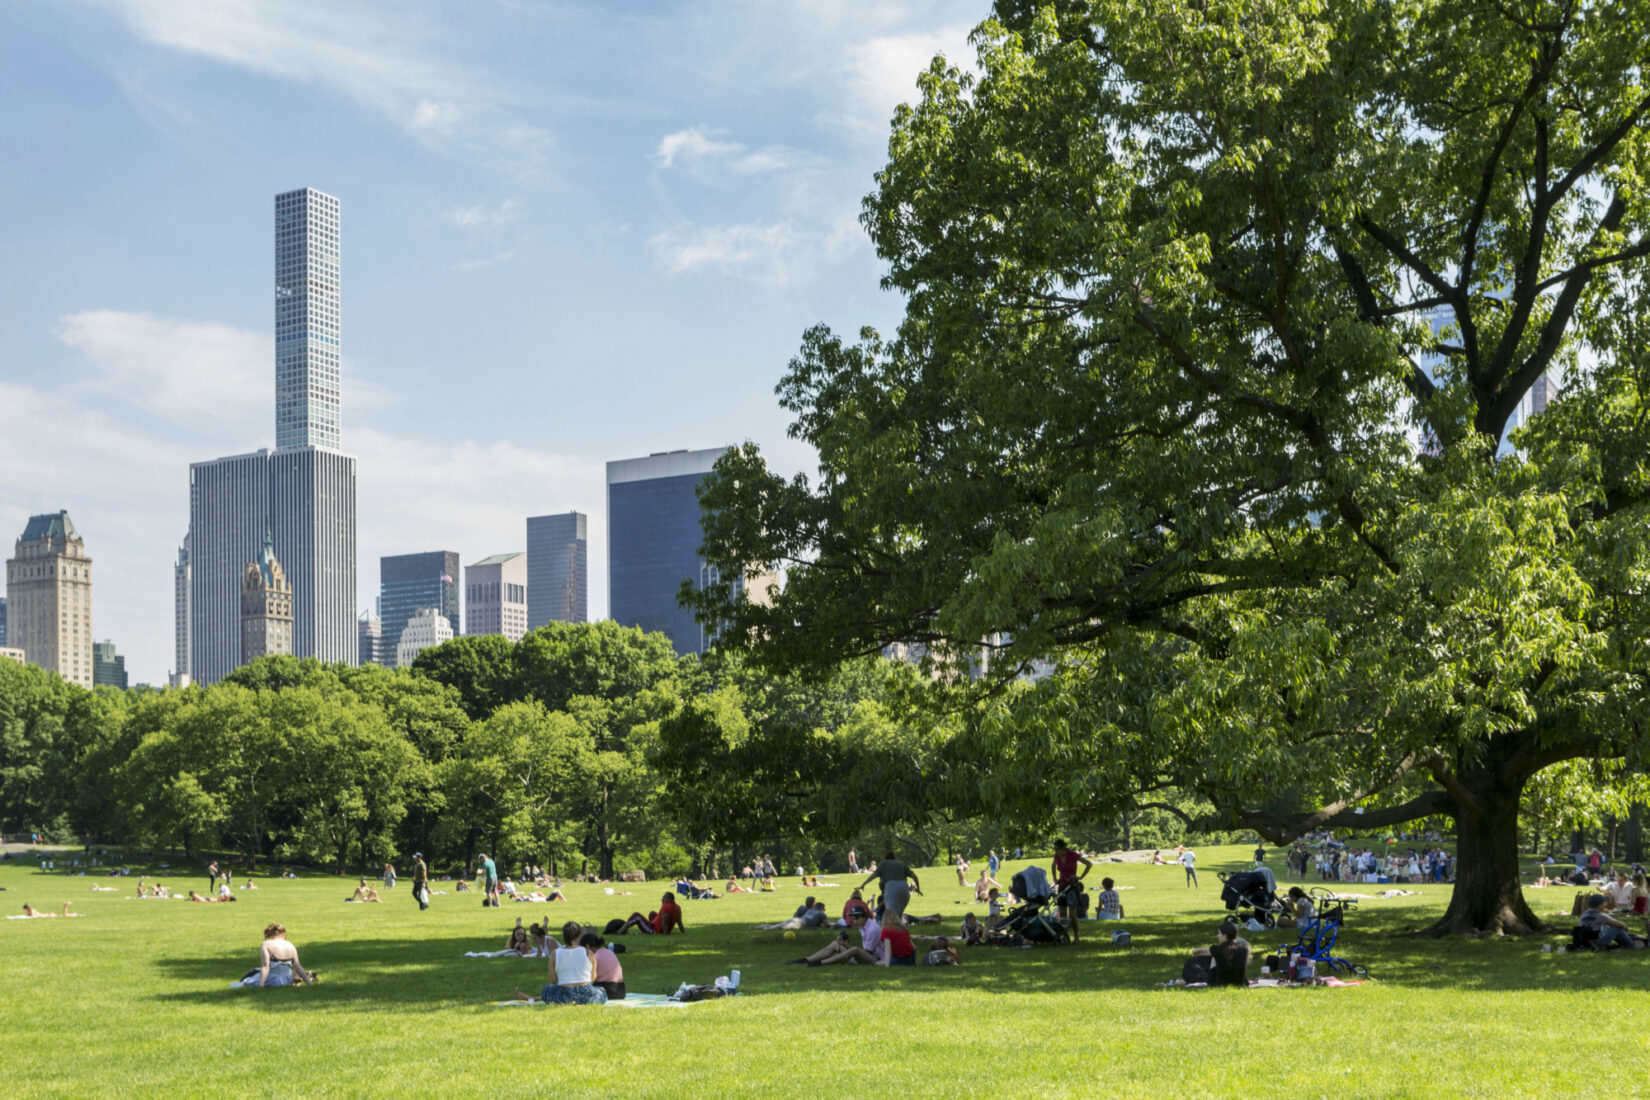 Park visitors find shade beneath a tree in the Sheep Meadow with the skyline in the background